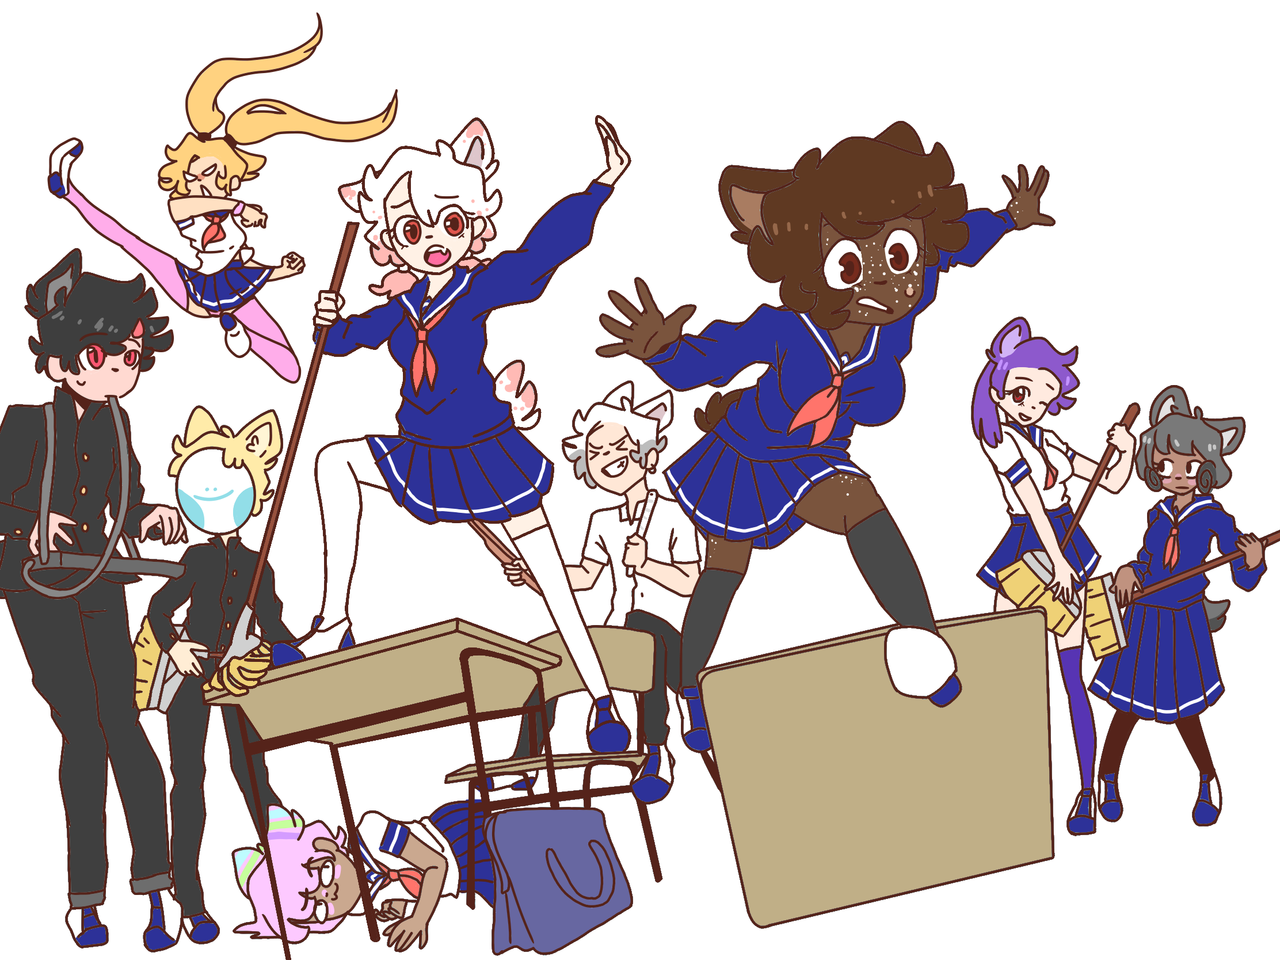 Found this base so I drew them as anime characters